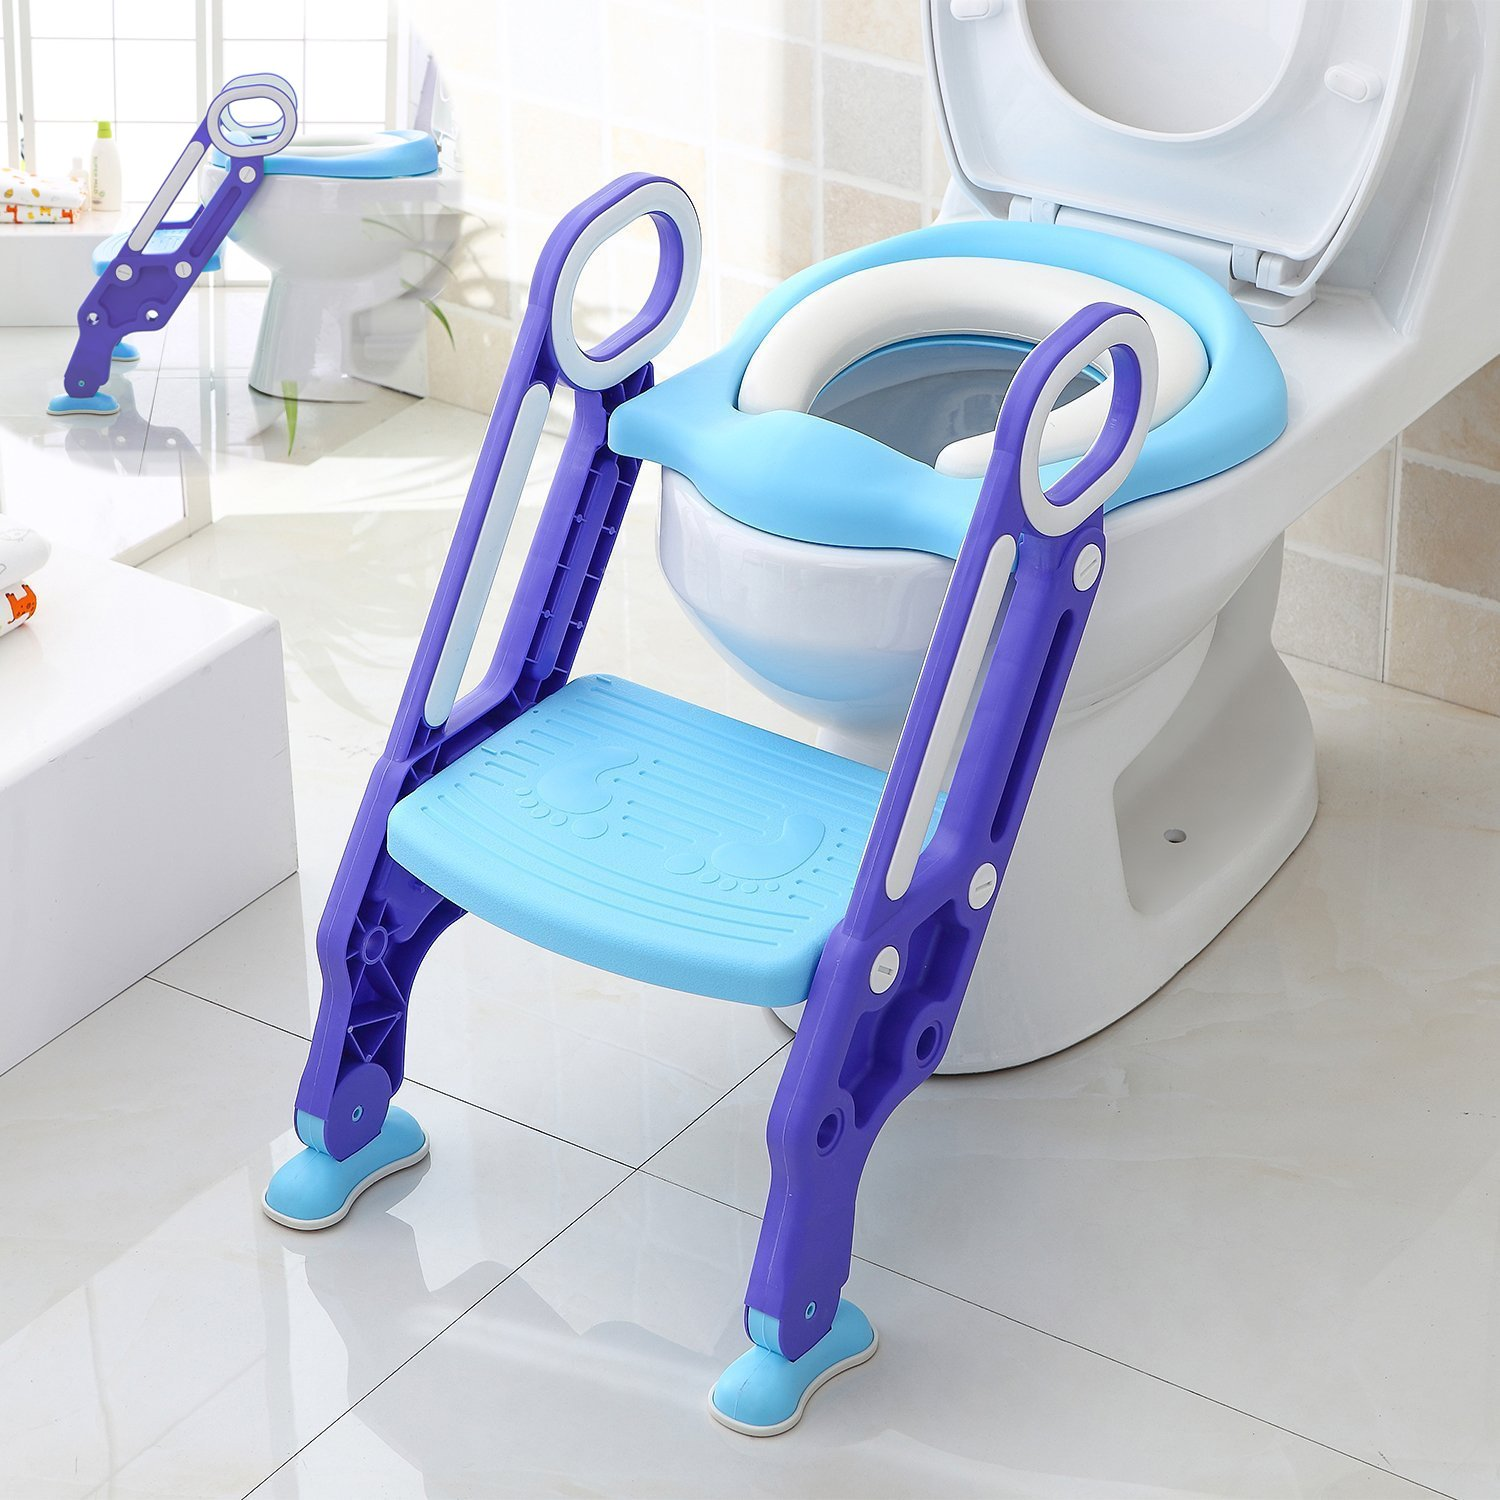 Makone Potty Trainer Seat Adjustable Baby Potty Toilet Ladder Seat with Step Stool Ladder for Todderls Baby by Makone (Image #1)